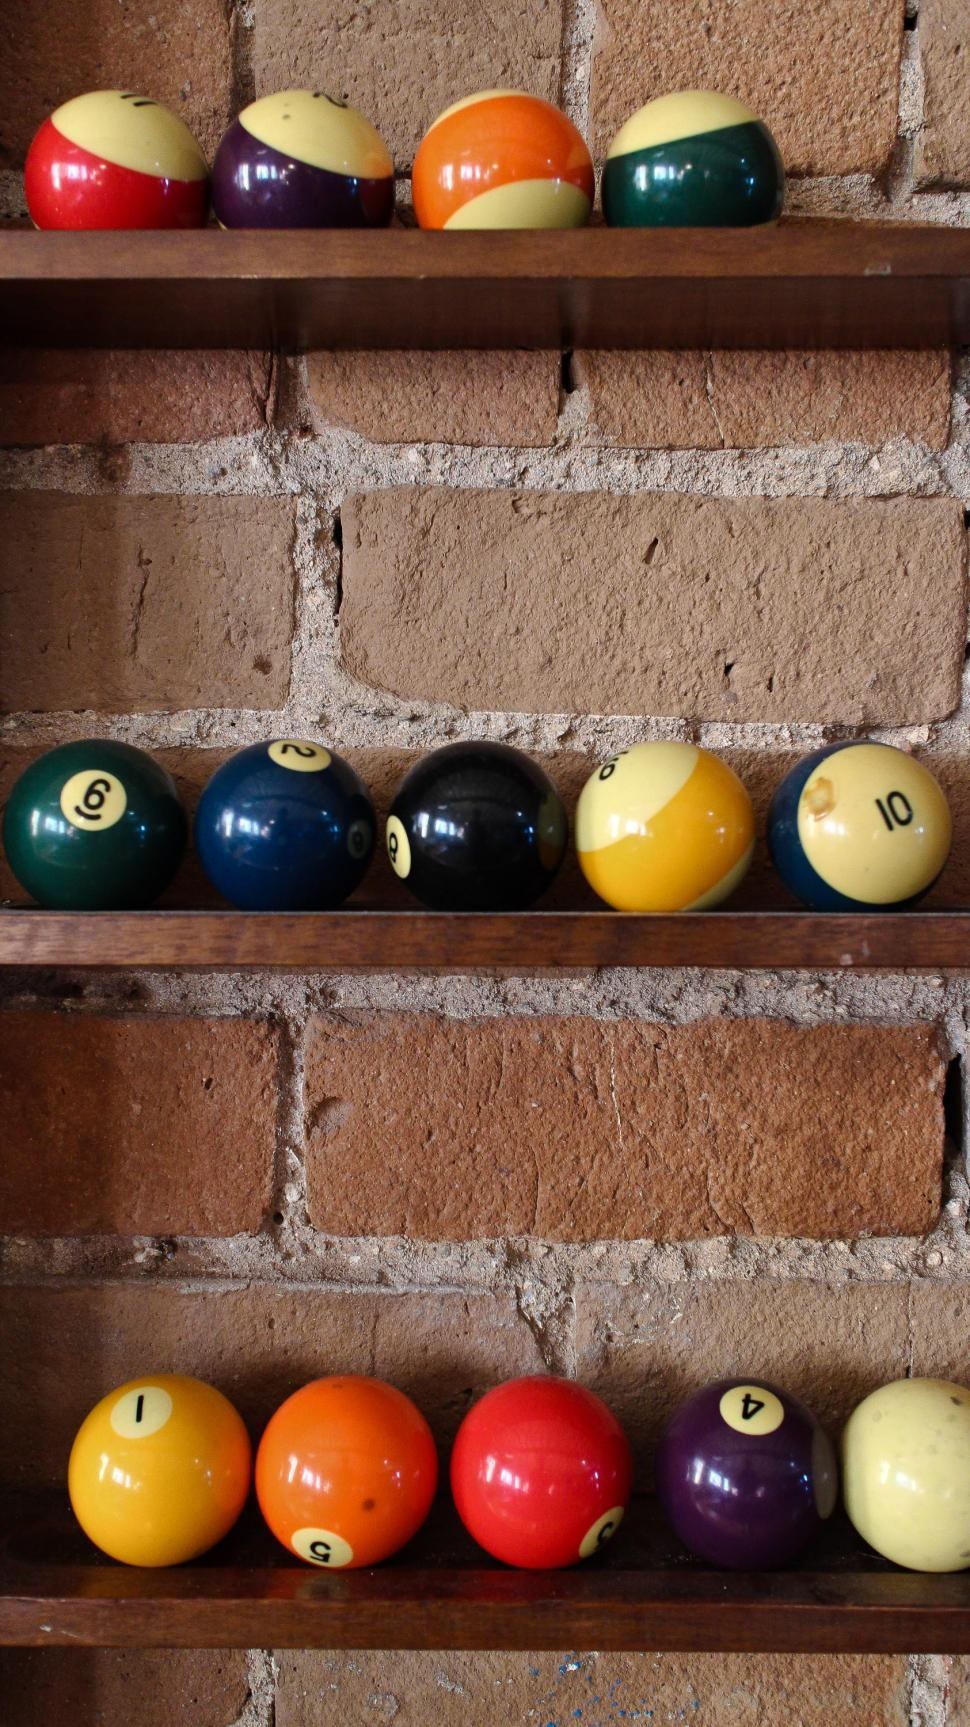 Download Free Stock HD Photo of Pool balls in a rack Online